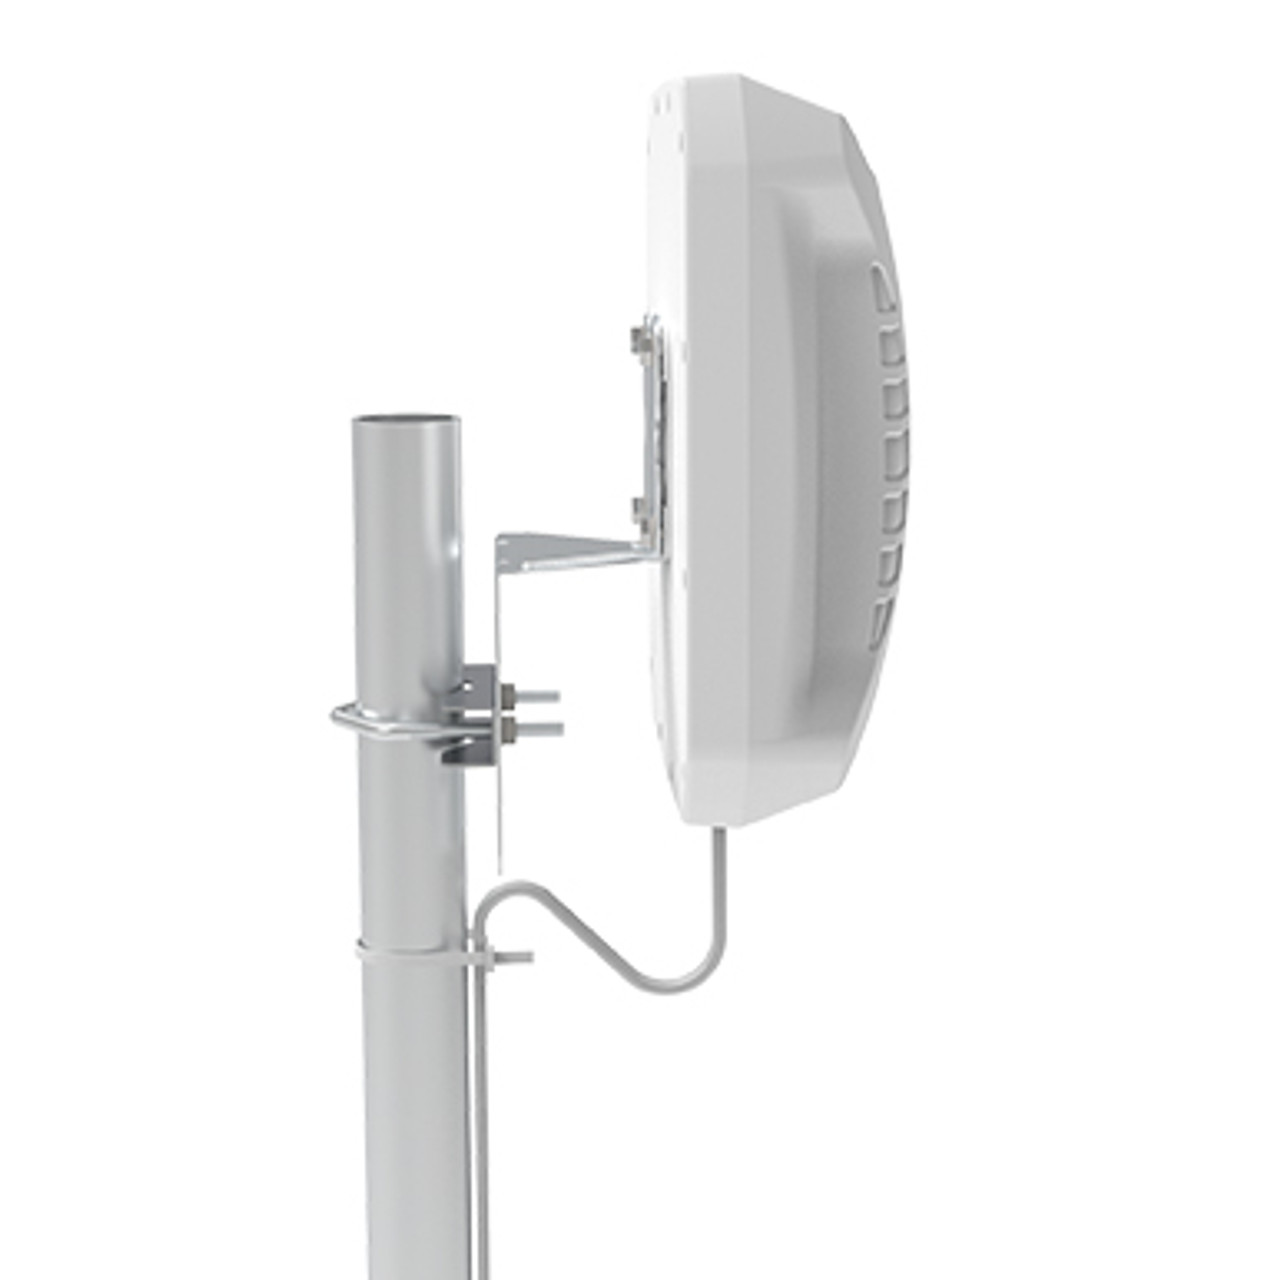 Crossbow Antenna Side View